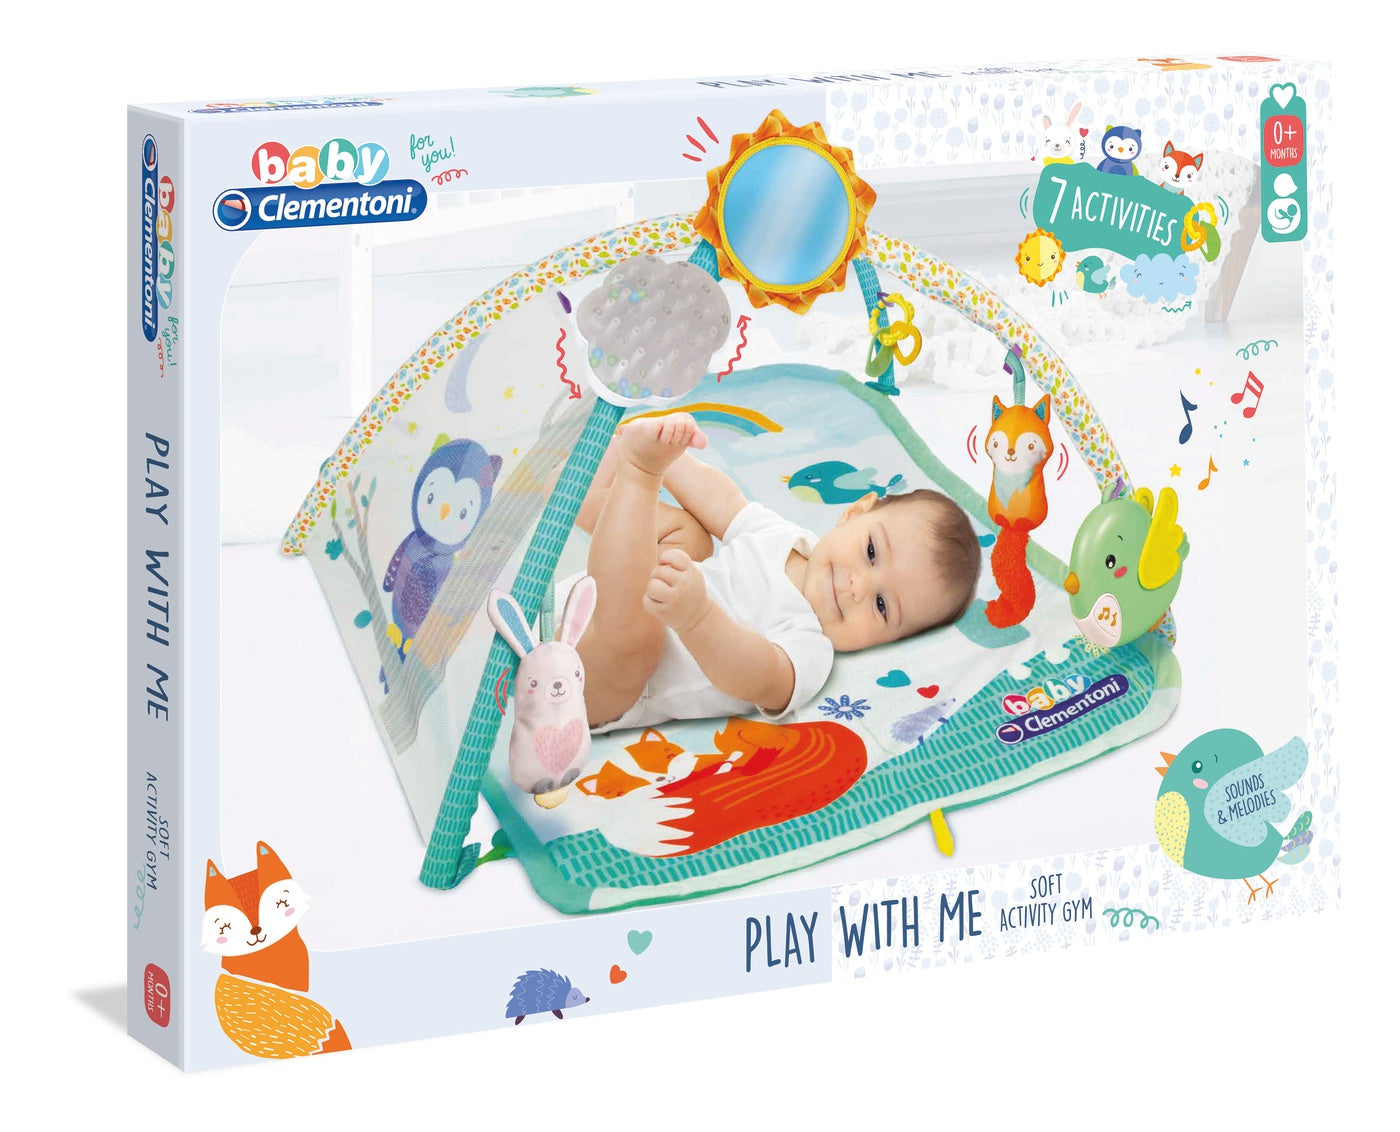 Baby Clementoni Play with Me Soft Activity Gym